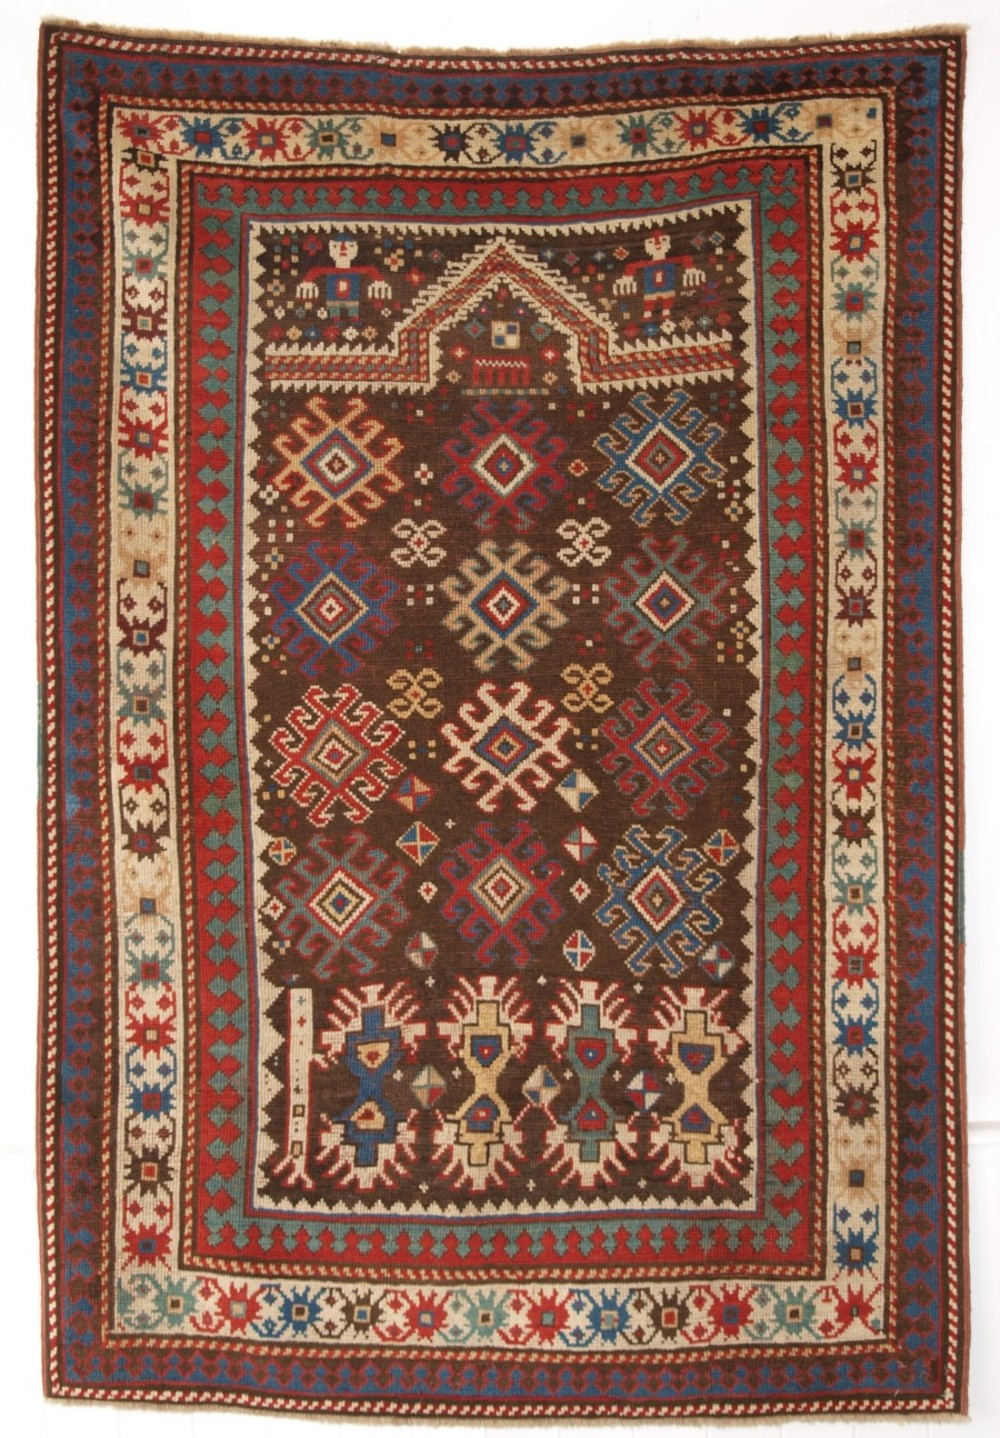 antique caucasian karabagh region prayer rug human figures circa 1880